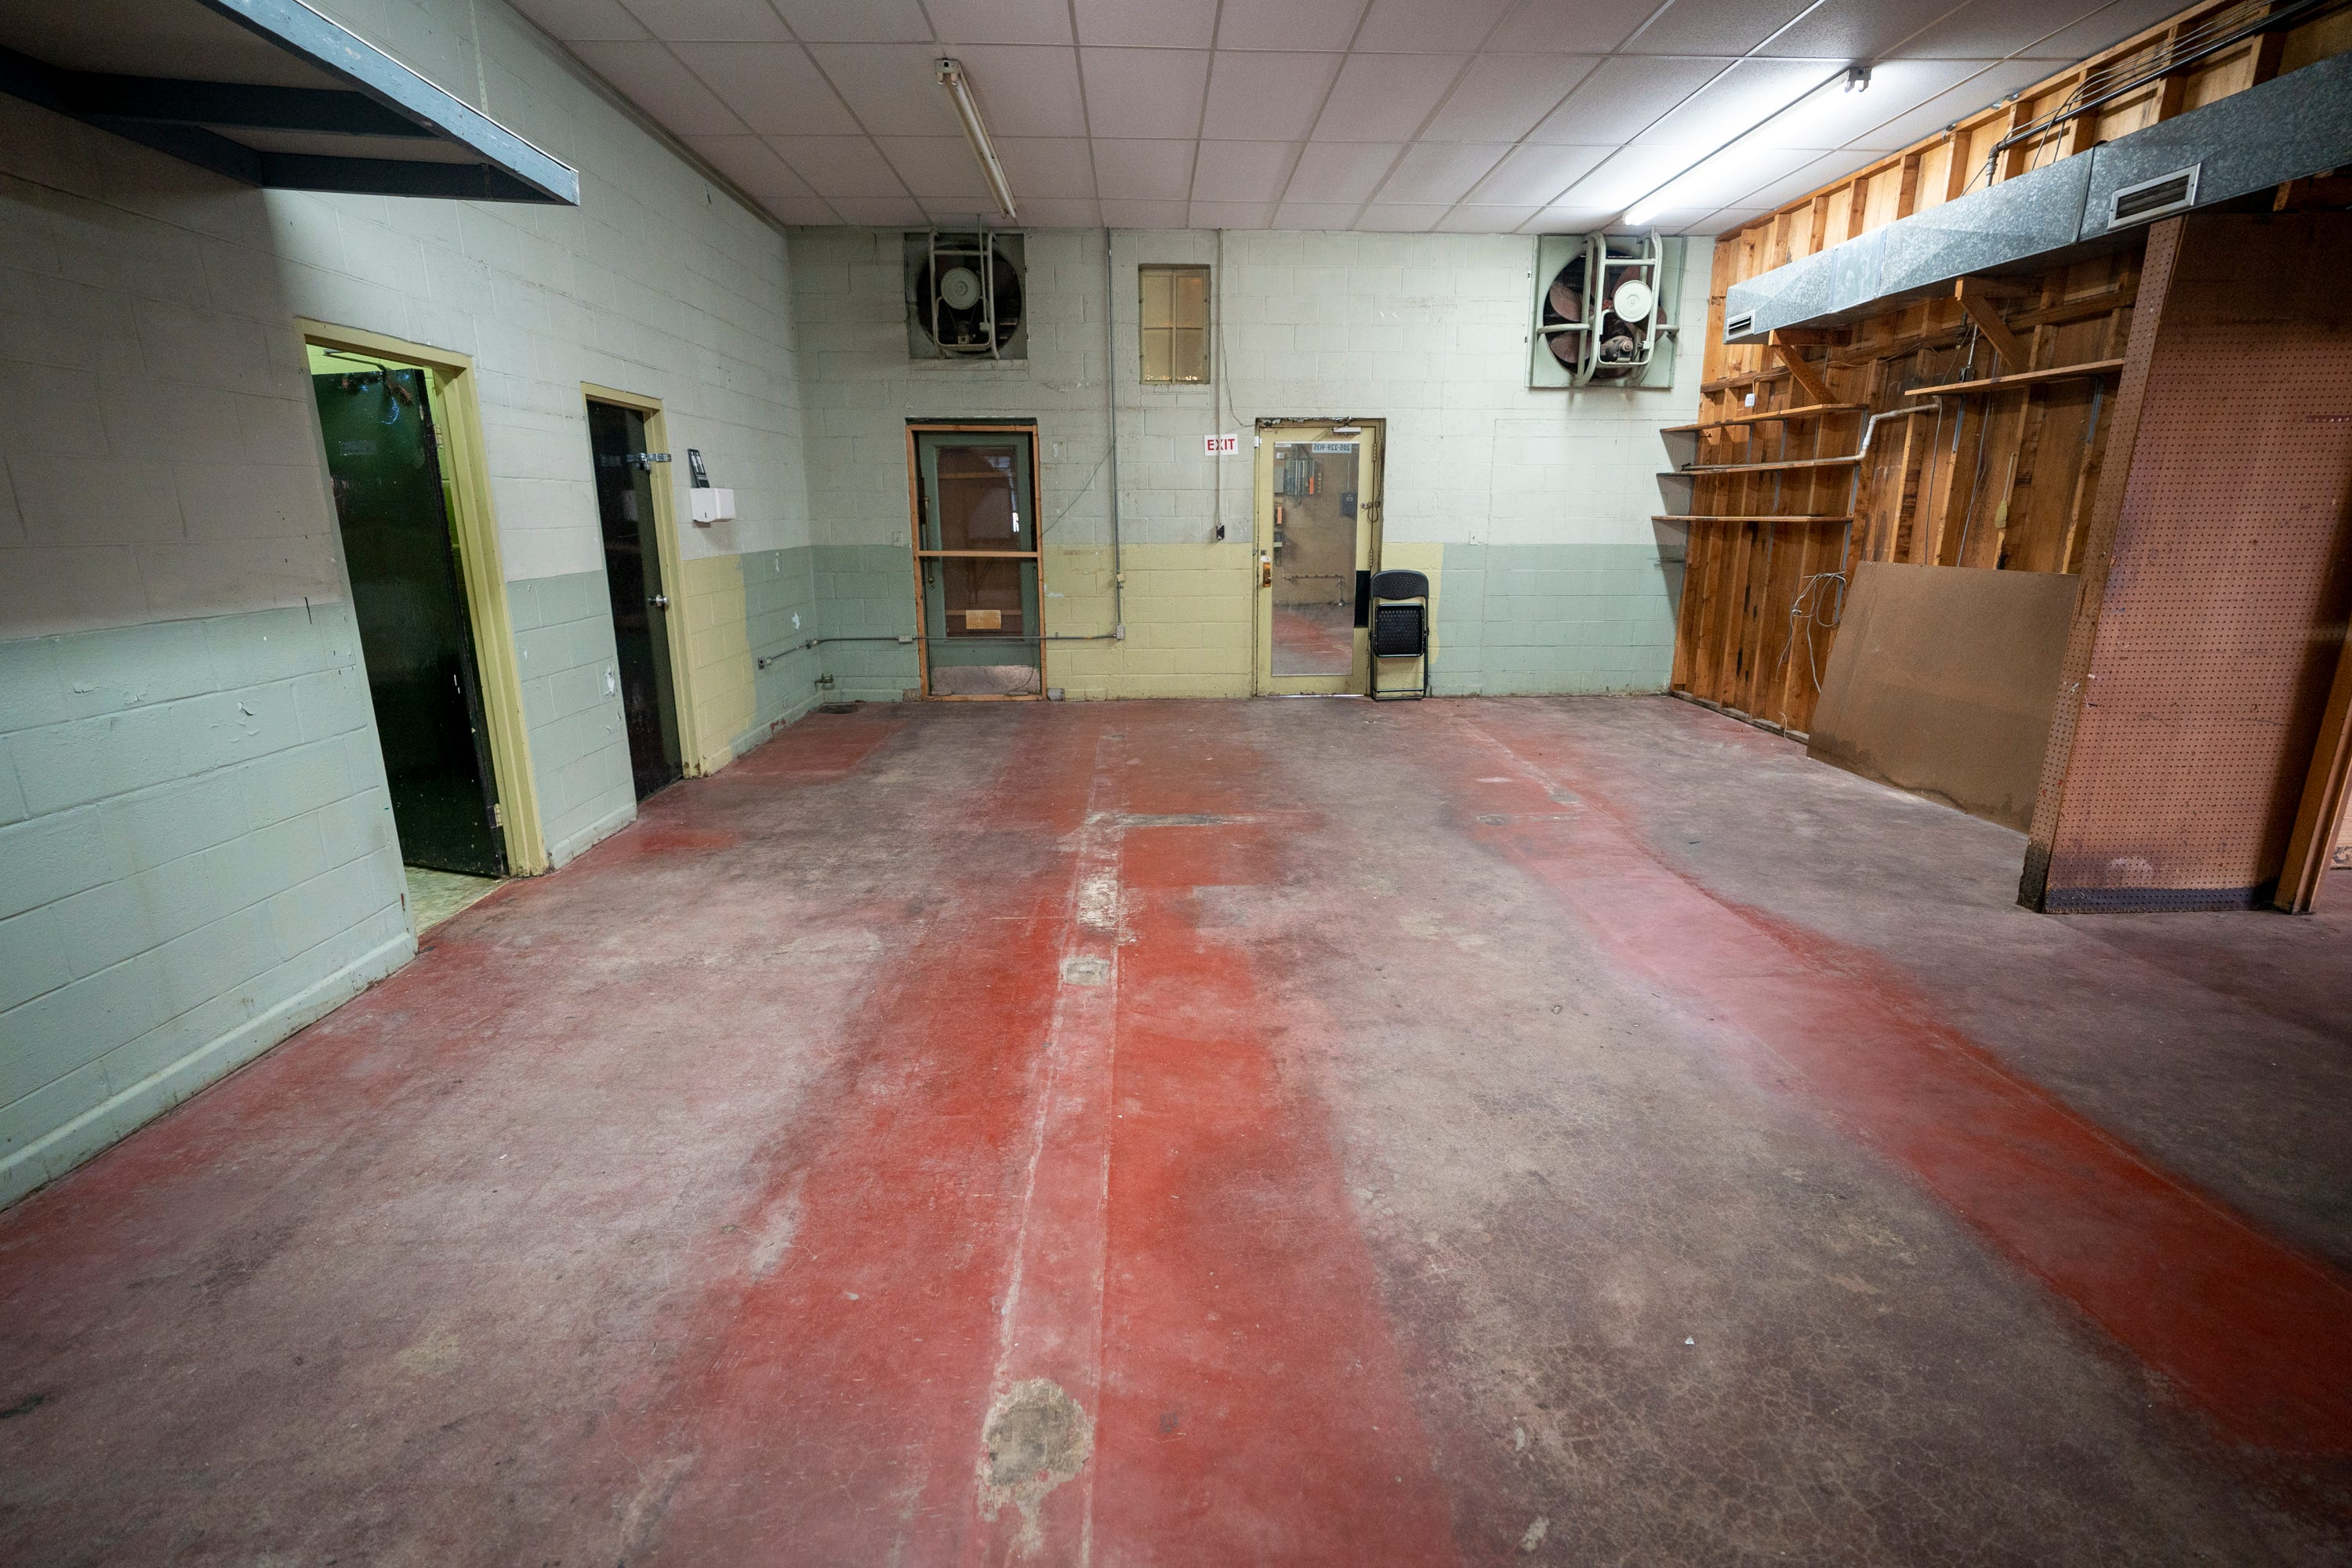 A line in the floor is all that remains of the walls that separated the two sides of the segregated Greyhound station, now preserved as the Freedom Riders National Monument, in Anniston, Ala., on Aug. 13, 2021.